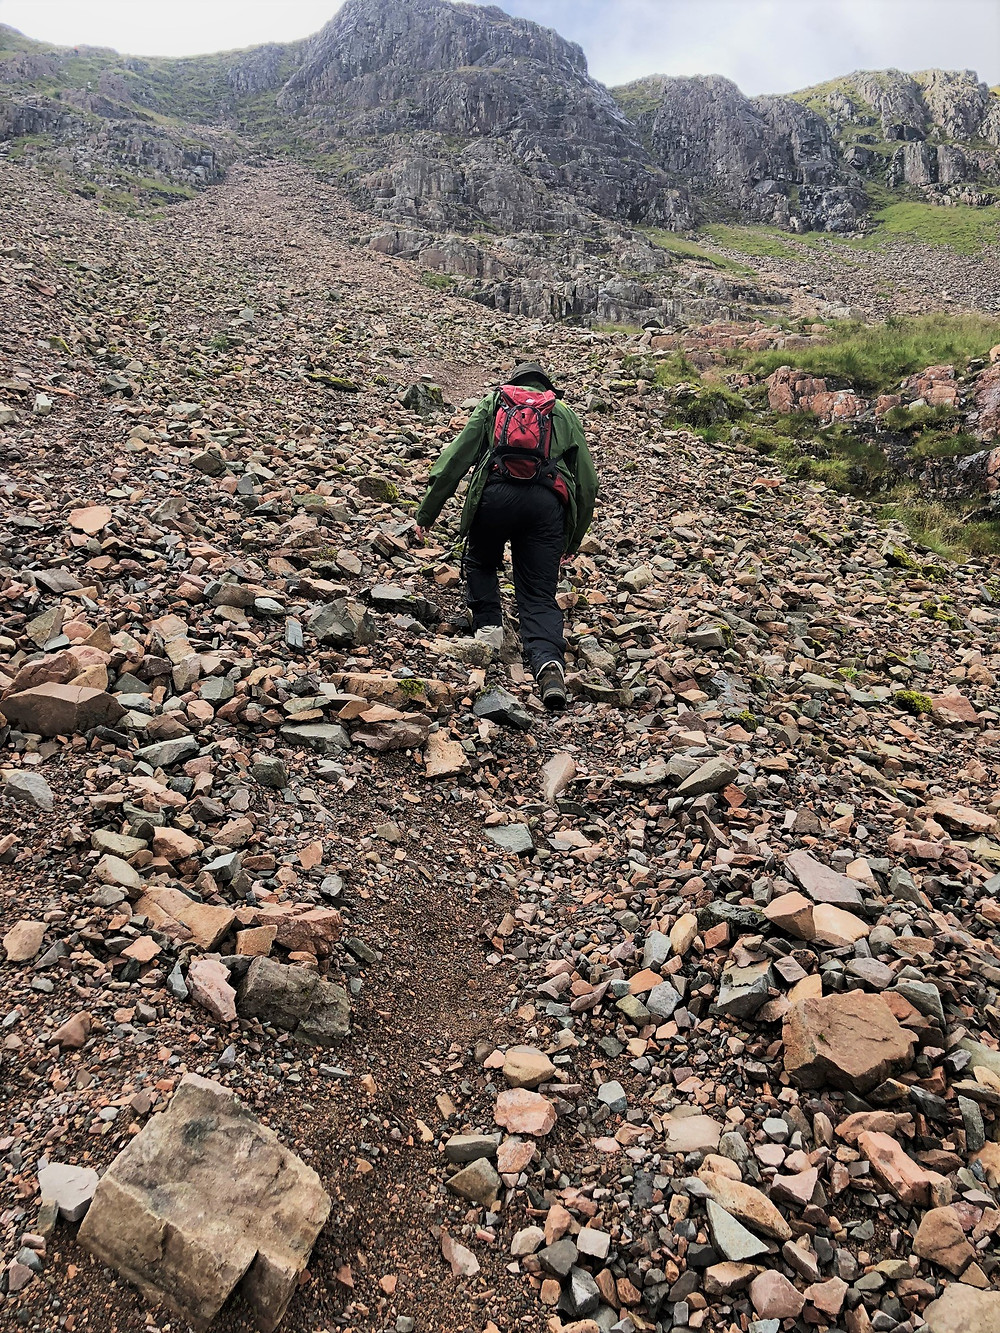 Toward the top of the Coire na Tuliach, the path weaved through a boulder field and into a scree chute